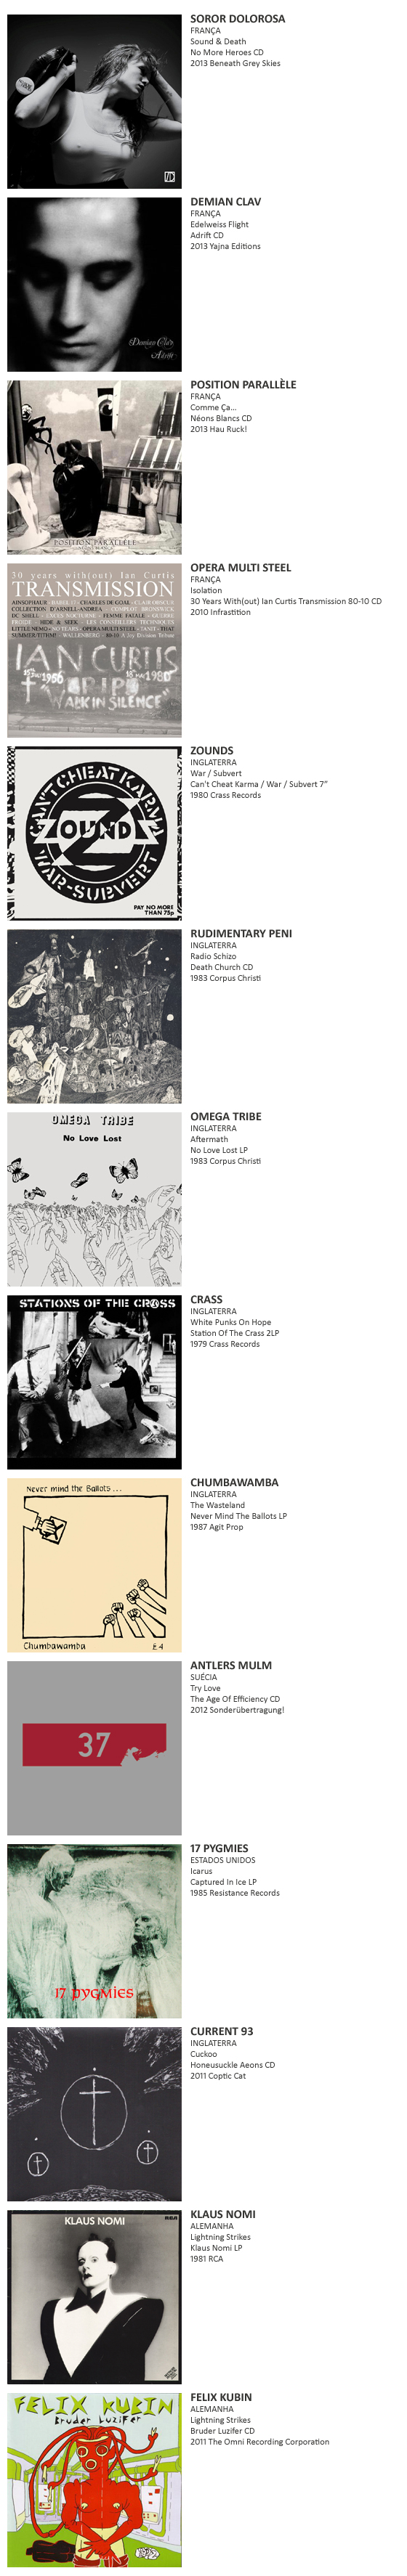 SOROR DOLOROSA, DEMIAN CLAV,  POSITION PARALLÈLE, OPERA MULTI STEEL, ZOUNDS, RUDIMENTARY PENI, OMEGA TRIBE, CRASS, CHUMBAWAMBA, ANTLERS MULM,  17 PYGMIES, CURRENT 93, KLAUS NOMI, FELIX KUBIN,  PHARMAKON, CRIME & THE CITY SOLUTION